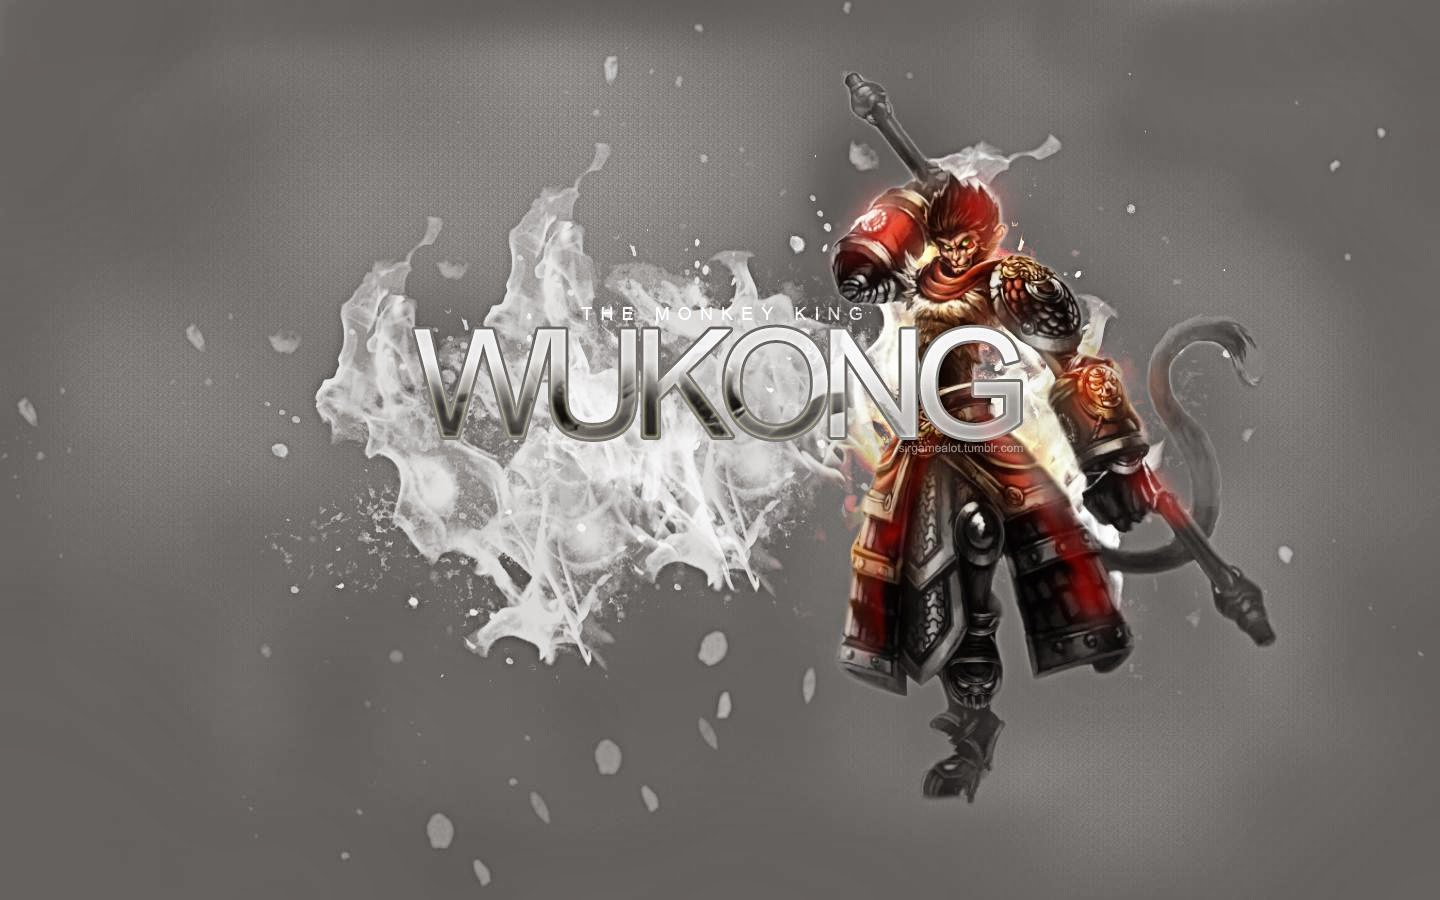 Wukong Desktop Backgrounds Wukong LOL Champion Wallpapers 1440x900